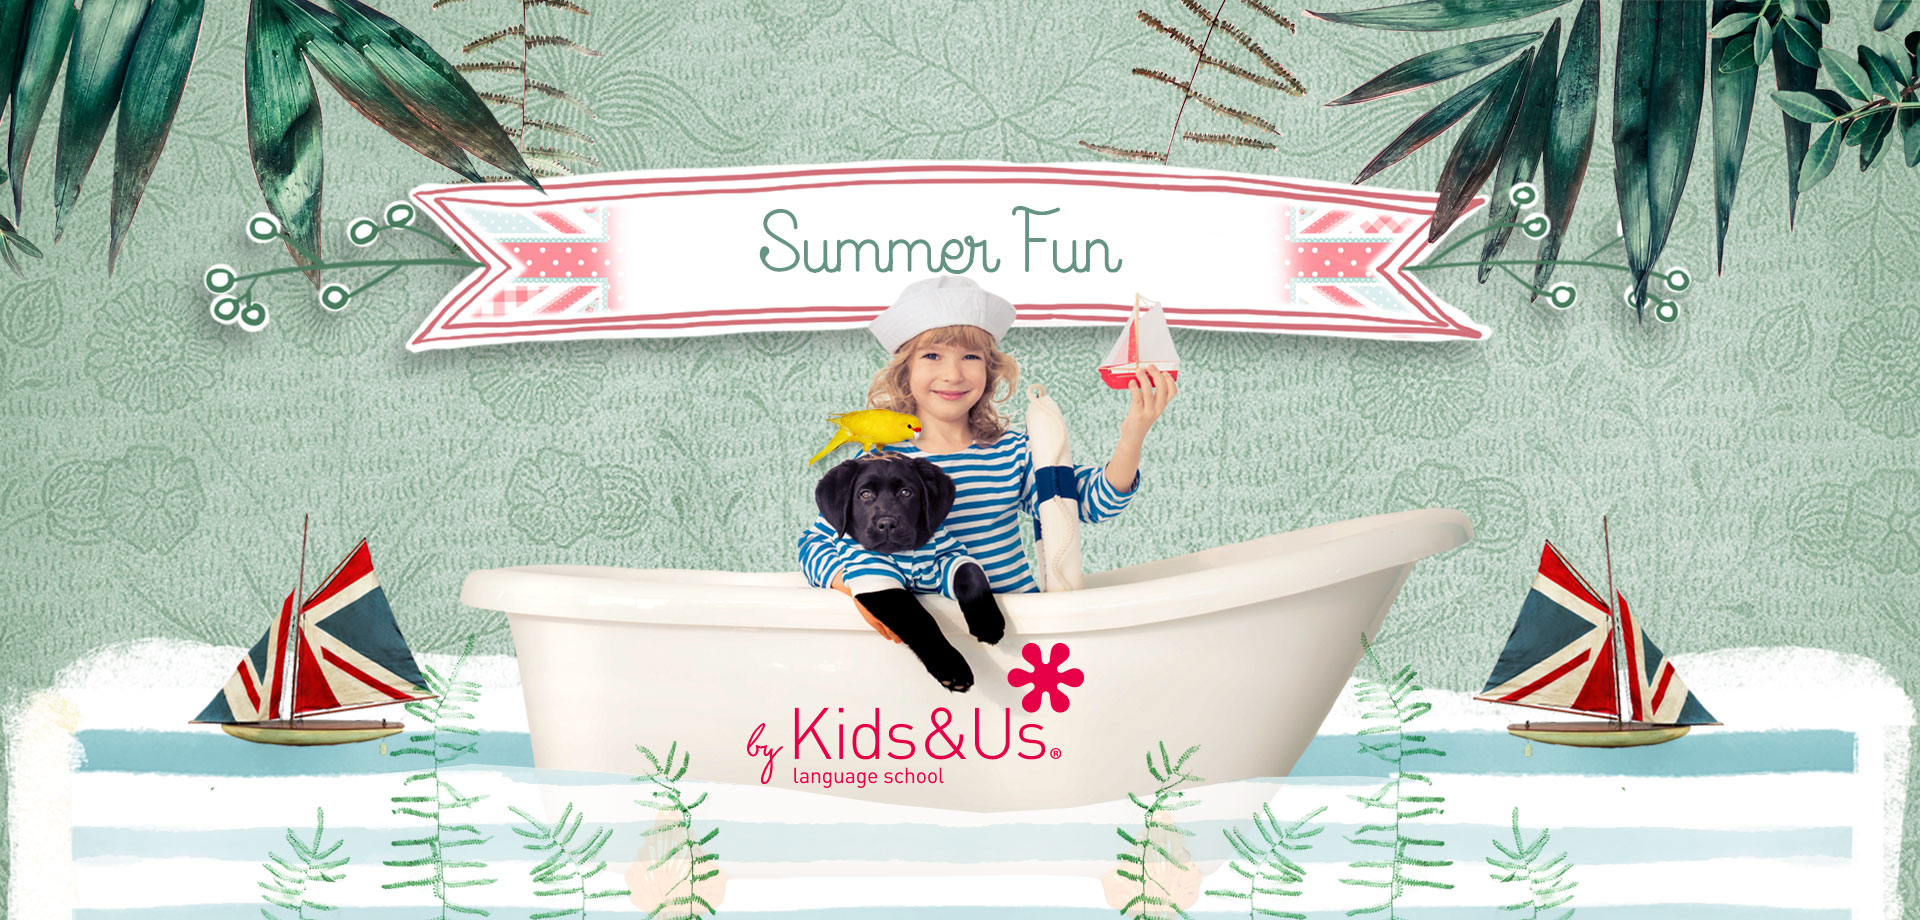 English Summer Fun Kids&Us